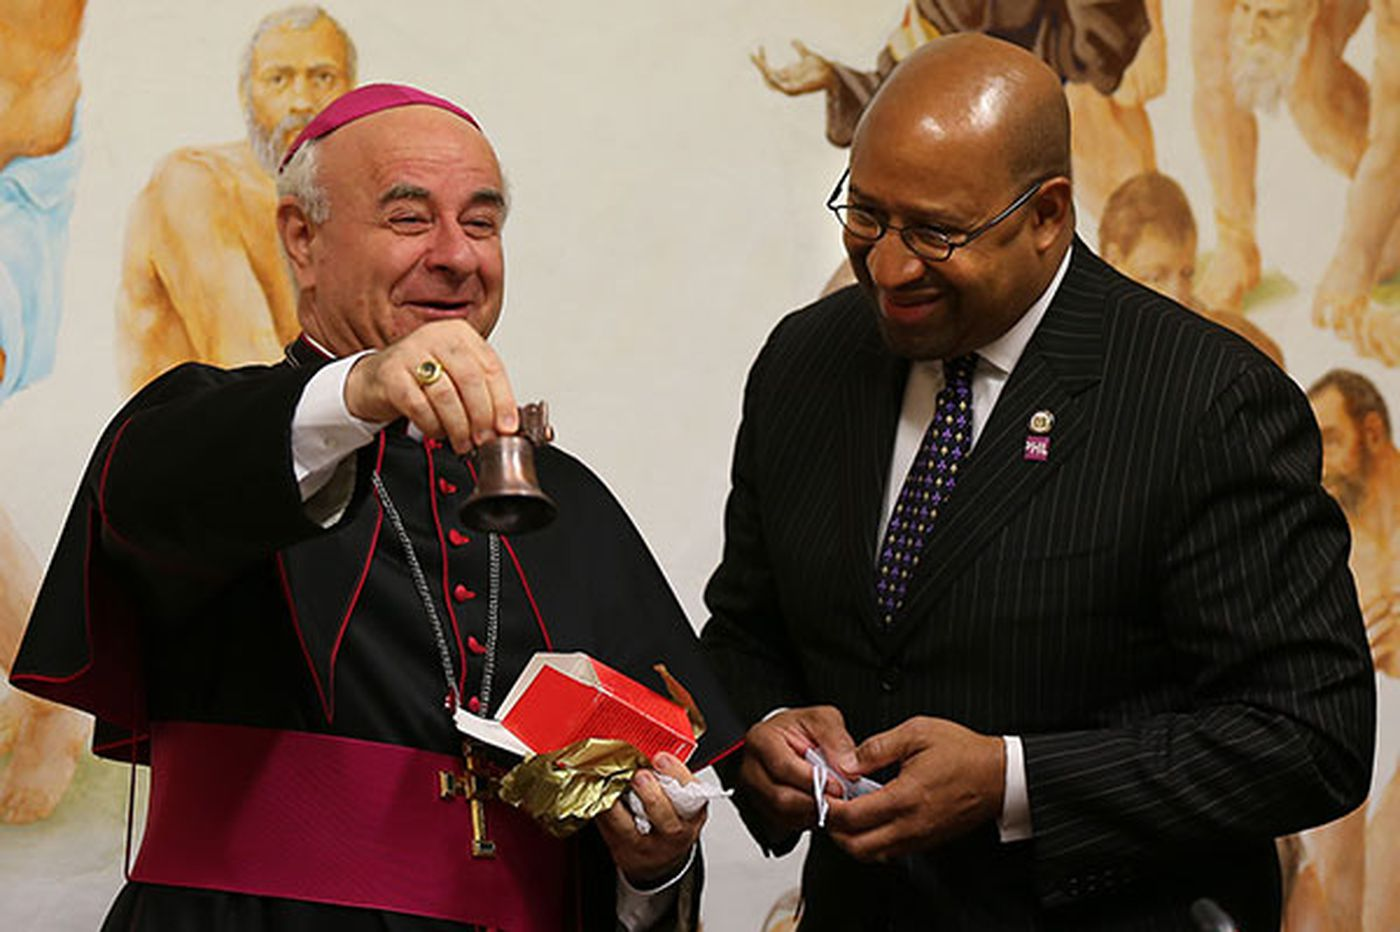 Cleric helping with pope's Philly visit in hot water